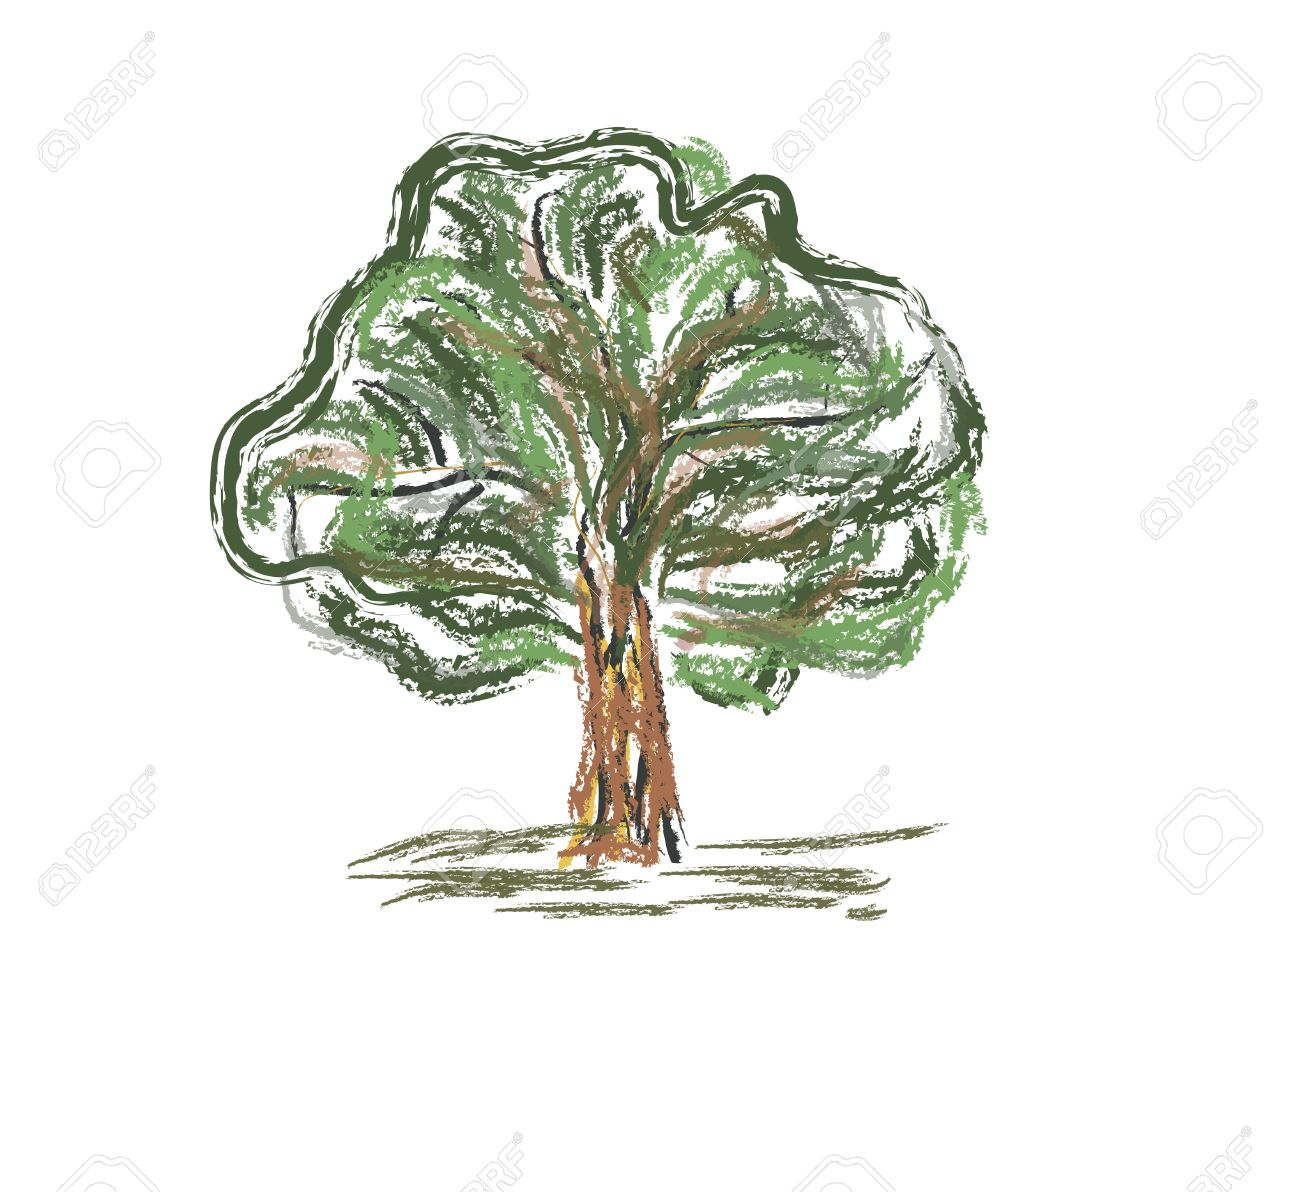 Colorful Old Tree Sketch Fast Pencil Hand Drawing Illustration Royalty Free Cliparts Vectors And Stock Illustration Image 12192449